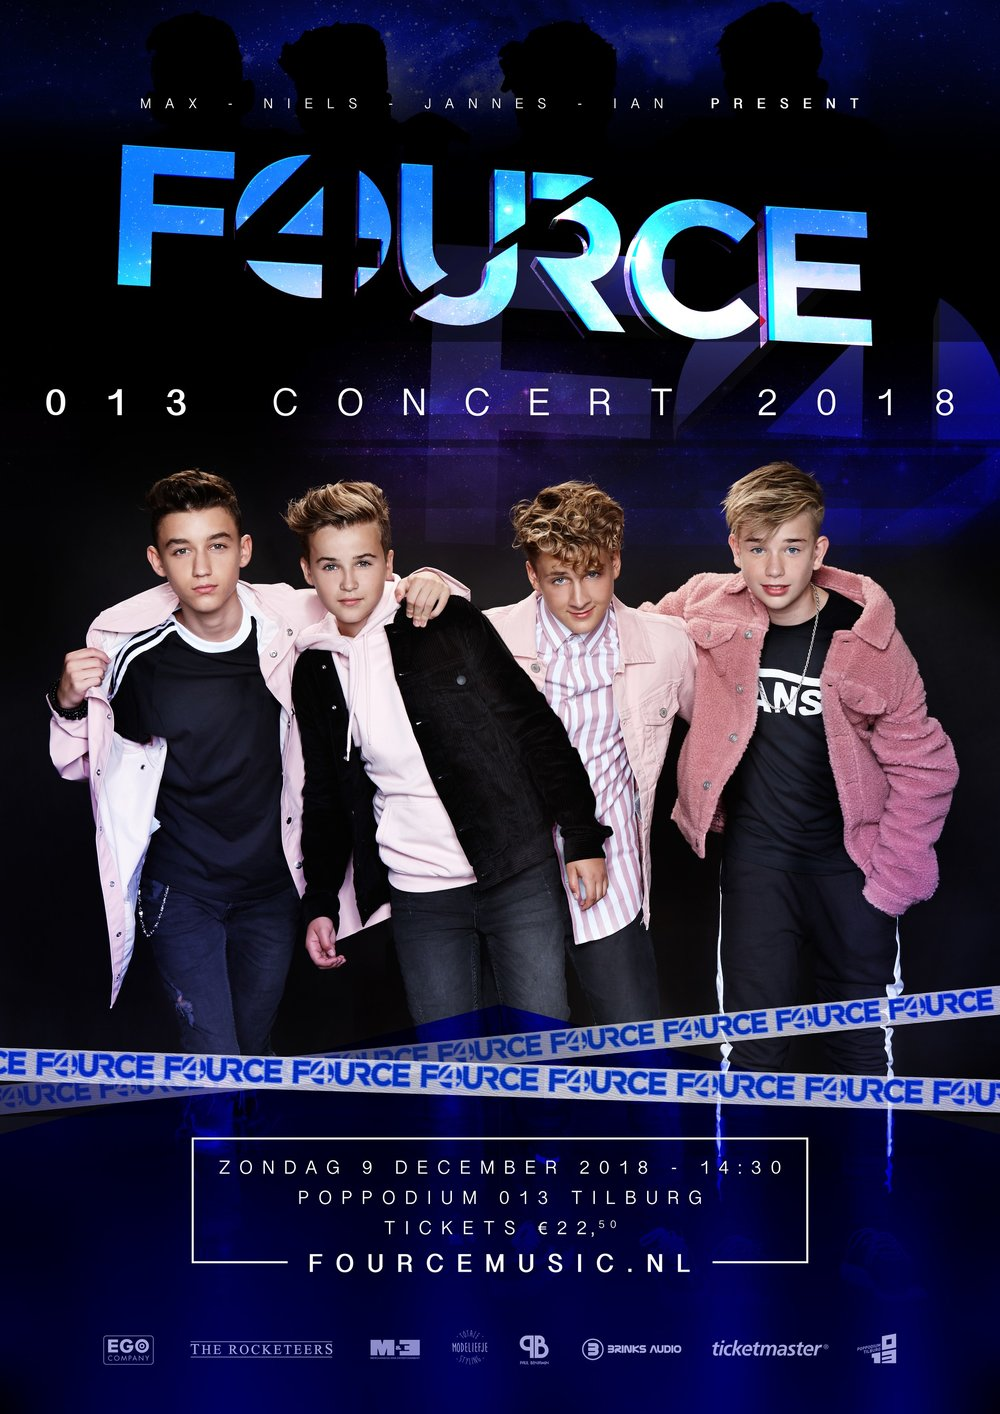 FOURCE POSTER A2 013 2018 RGB M.jpg